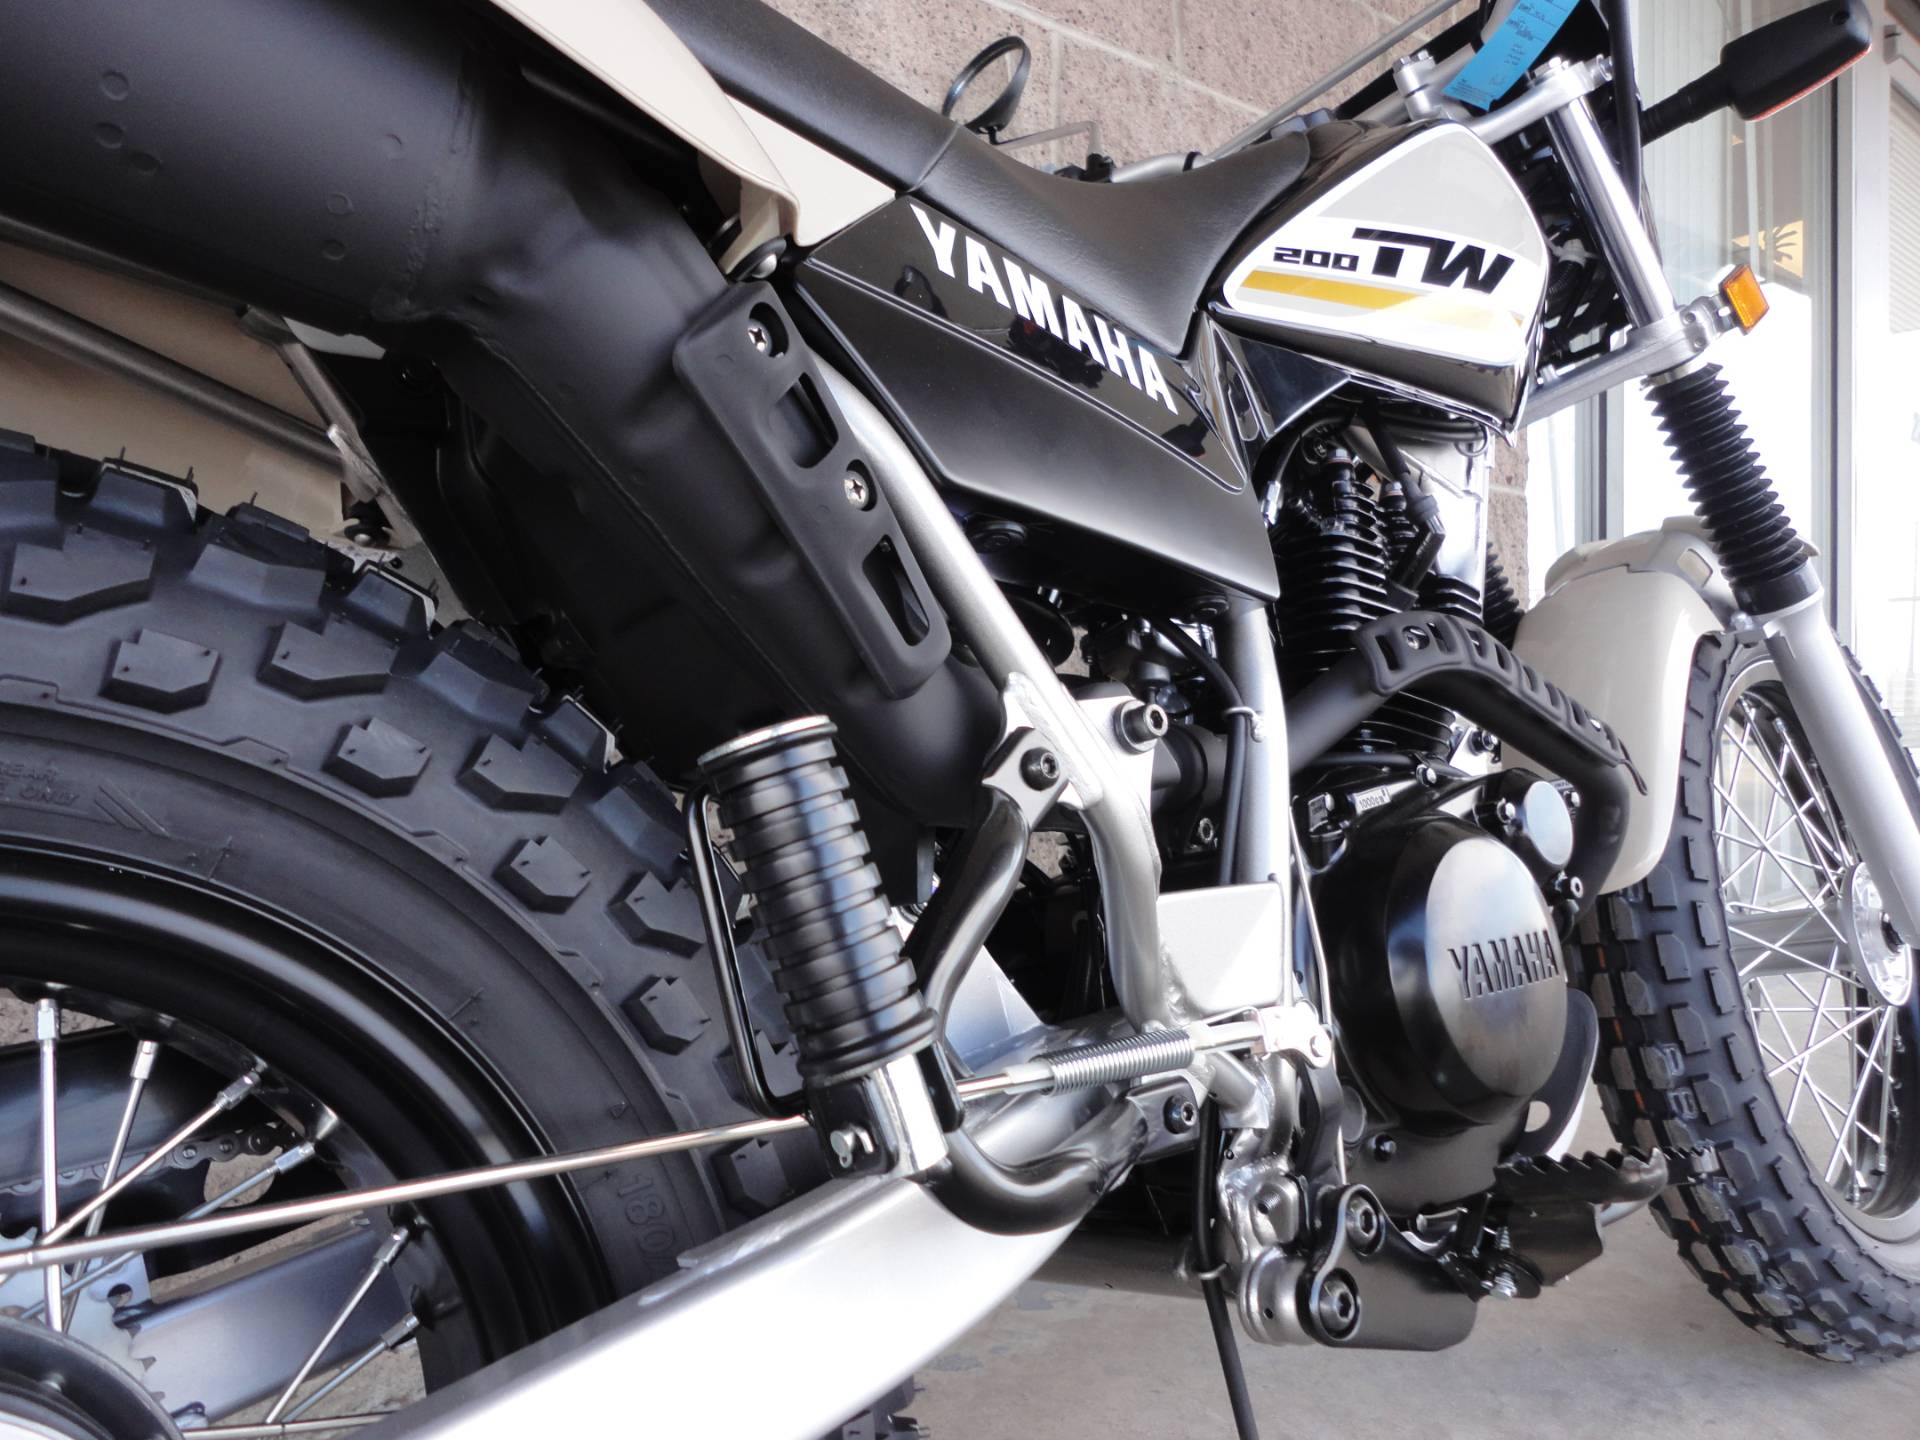 2019 Yamaha TW200 in Denver, Colorado - Photo 19